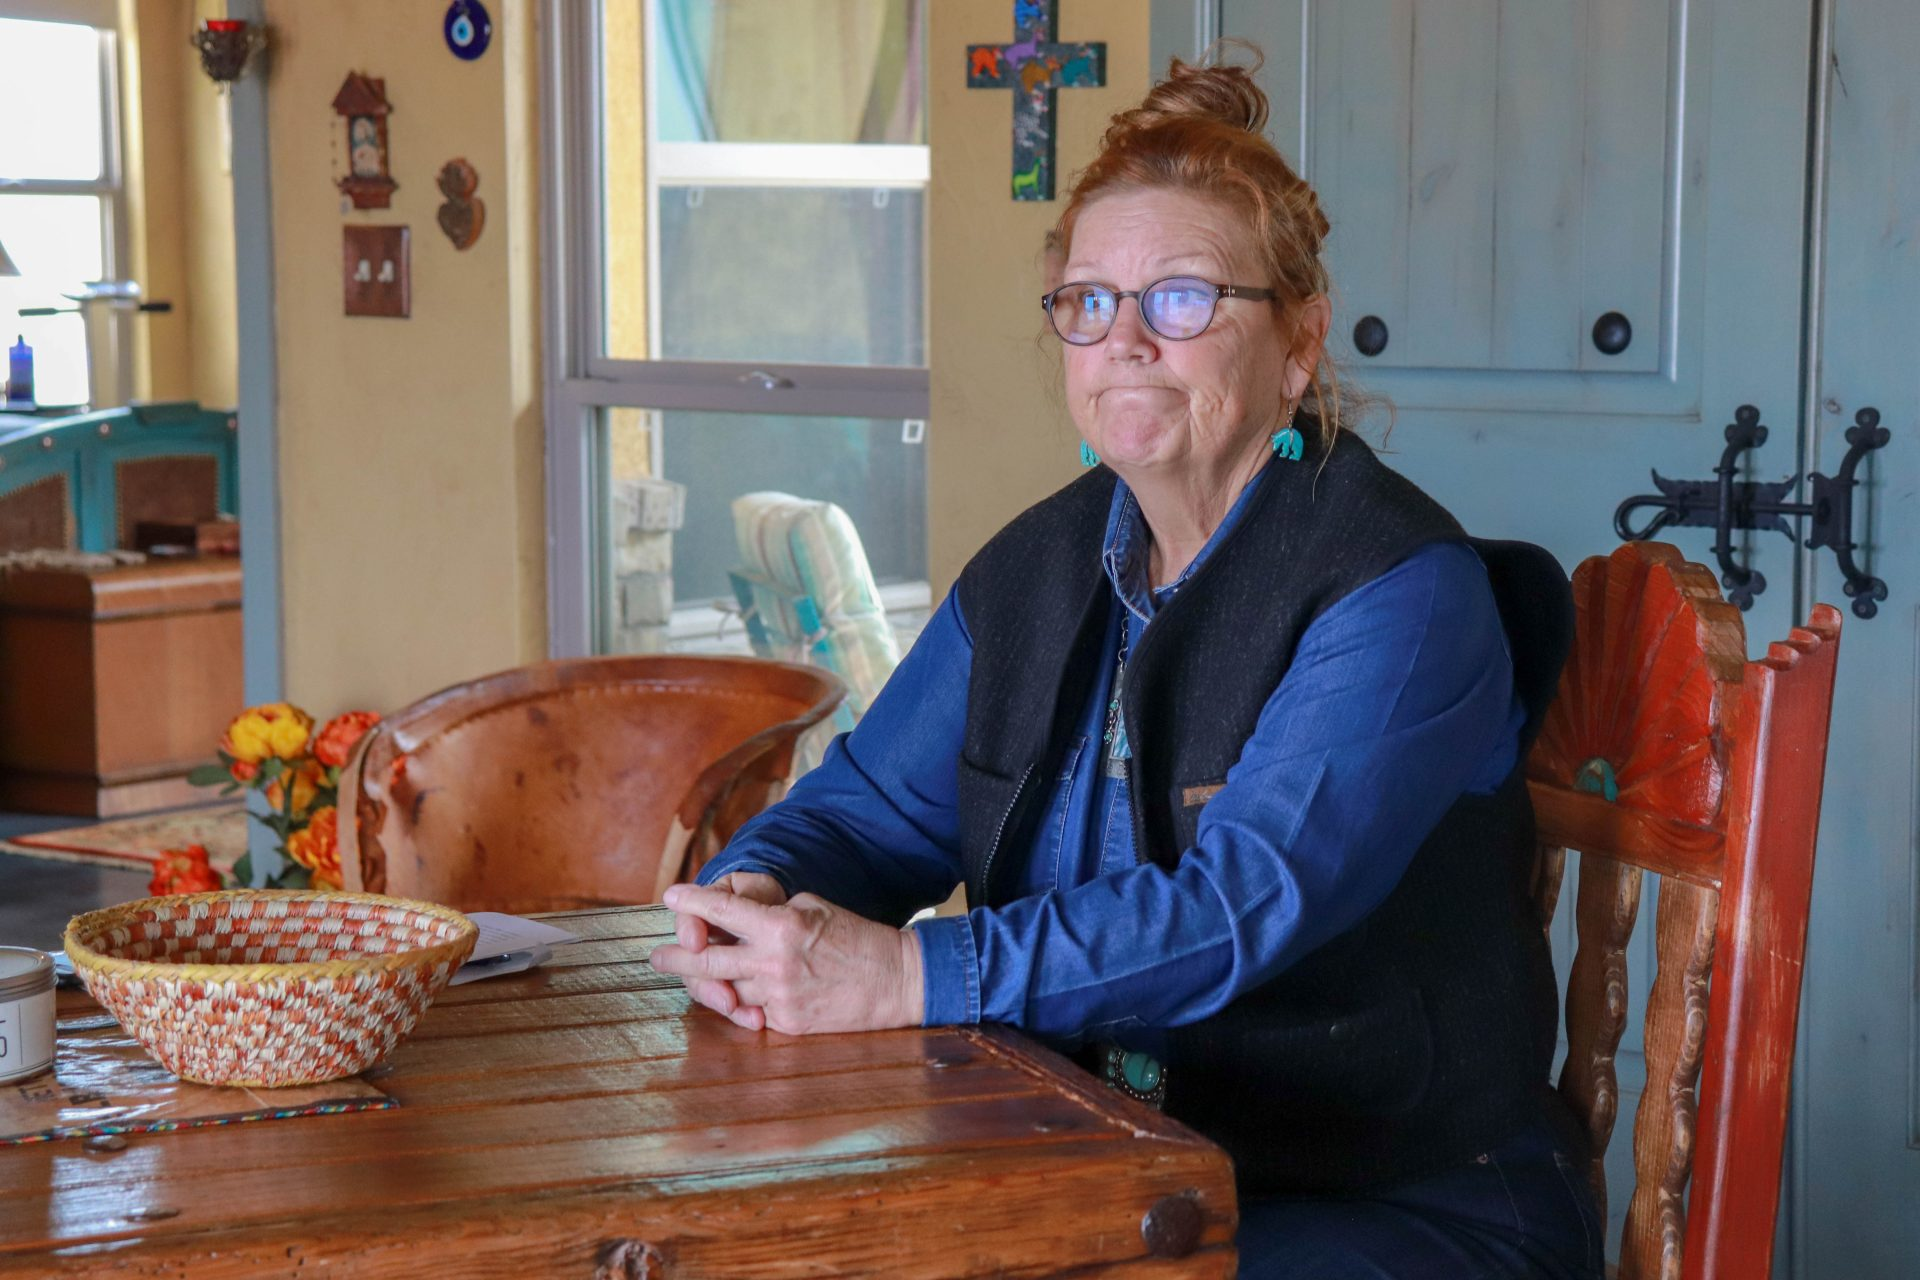 Terry Sue Barnett sits at a table inside her home.